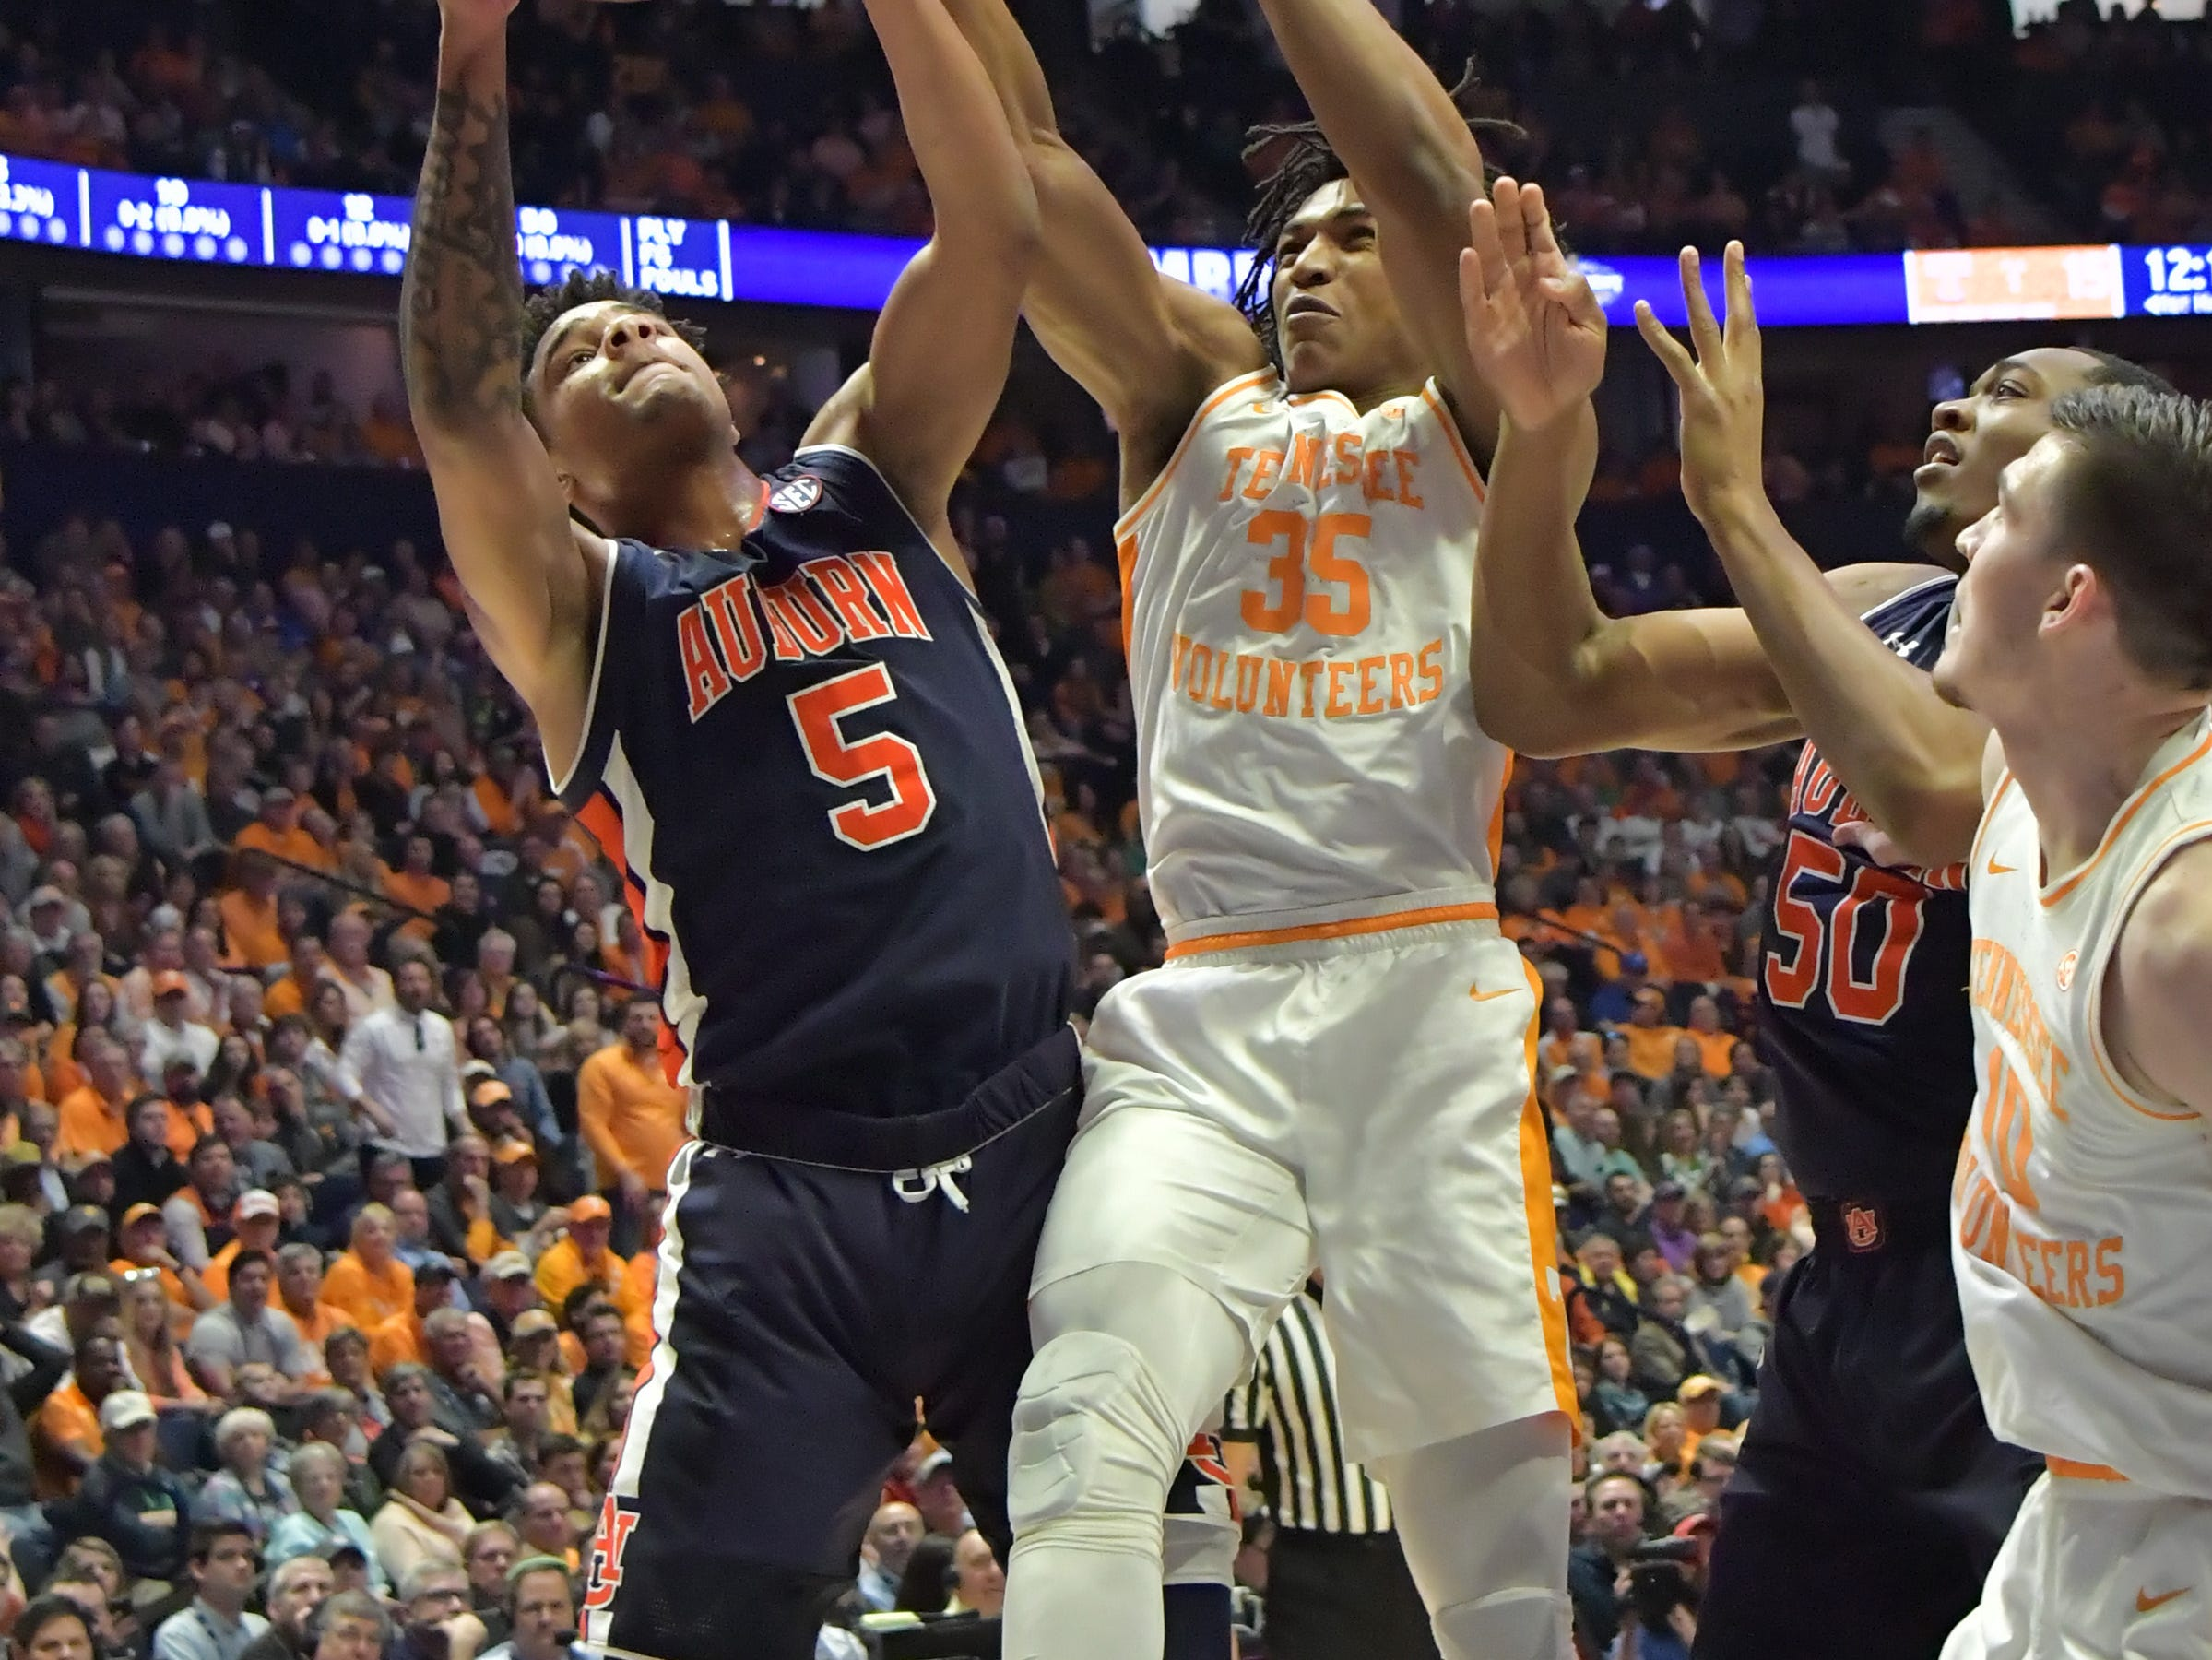 Mar 17, 2019; Nashville, TN, USA; Auburn Tigers forward Chuma Okeke (5) goes for the rebound againstTennessee Volunteers forward Yves Pons (35) during the first half of the championship game in the SEC conference tournament at Bridgestone Arena. Mandatory Credit: Jim Brown-USA TODAY Sports